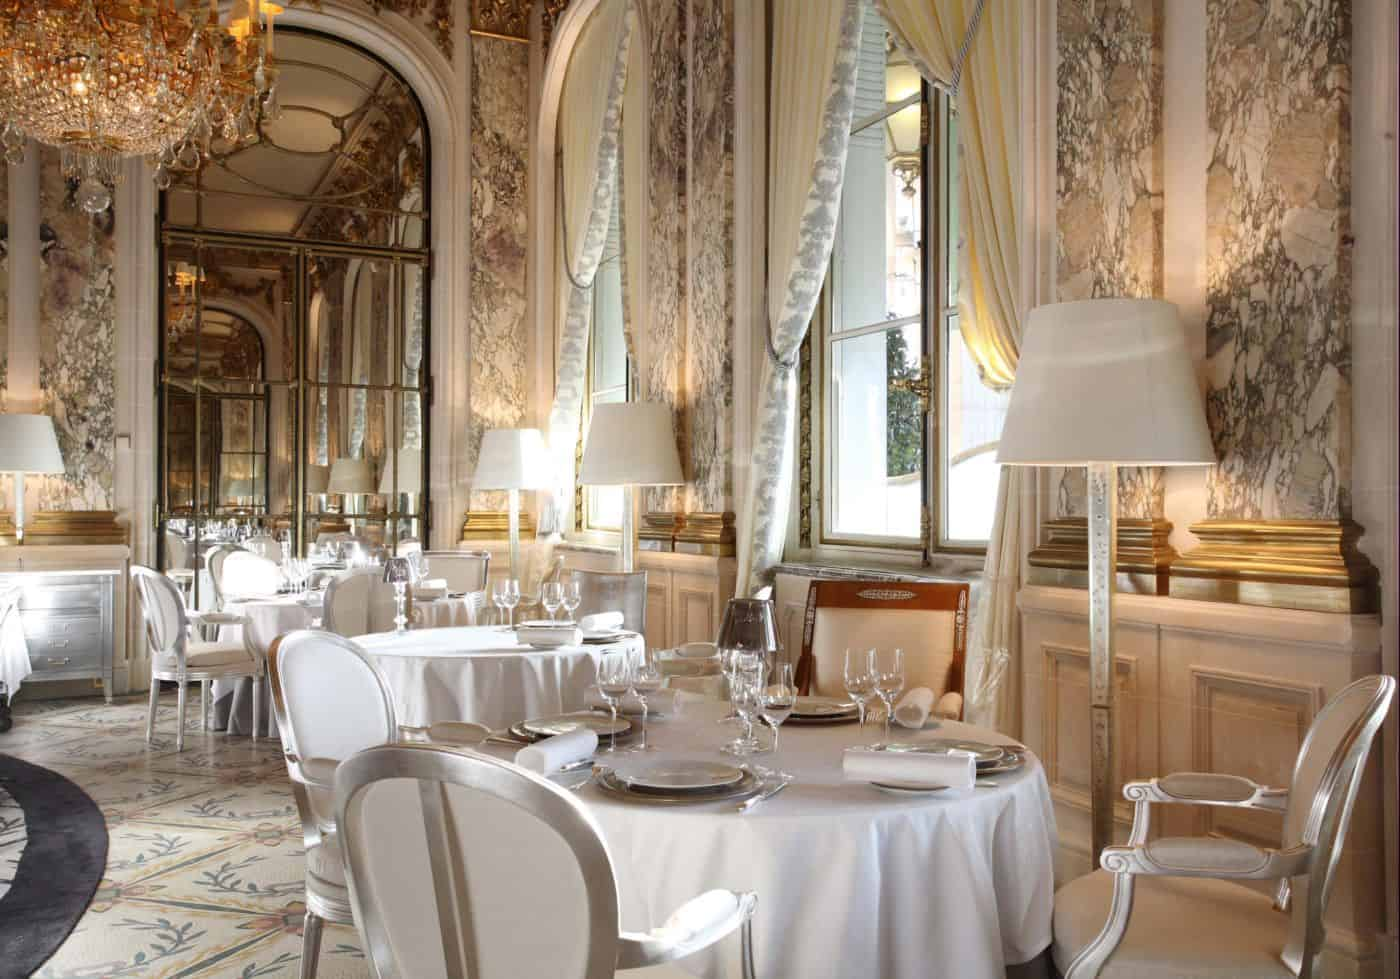 Best restaurants in paris france beverly hills magazine for Restaurant cuisine francaise paris